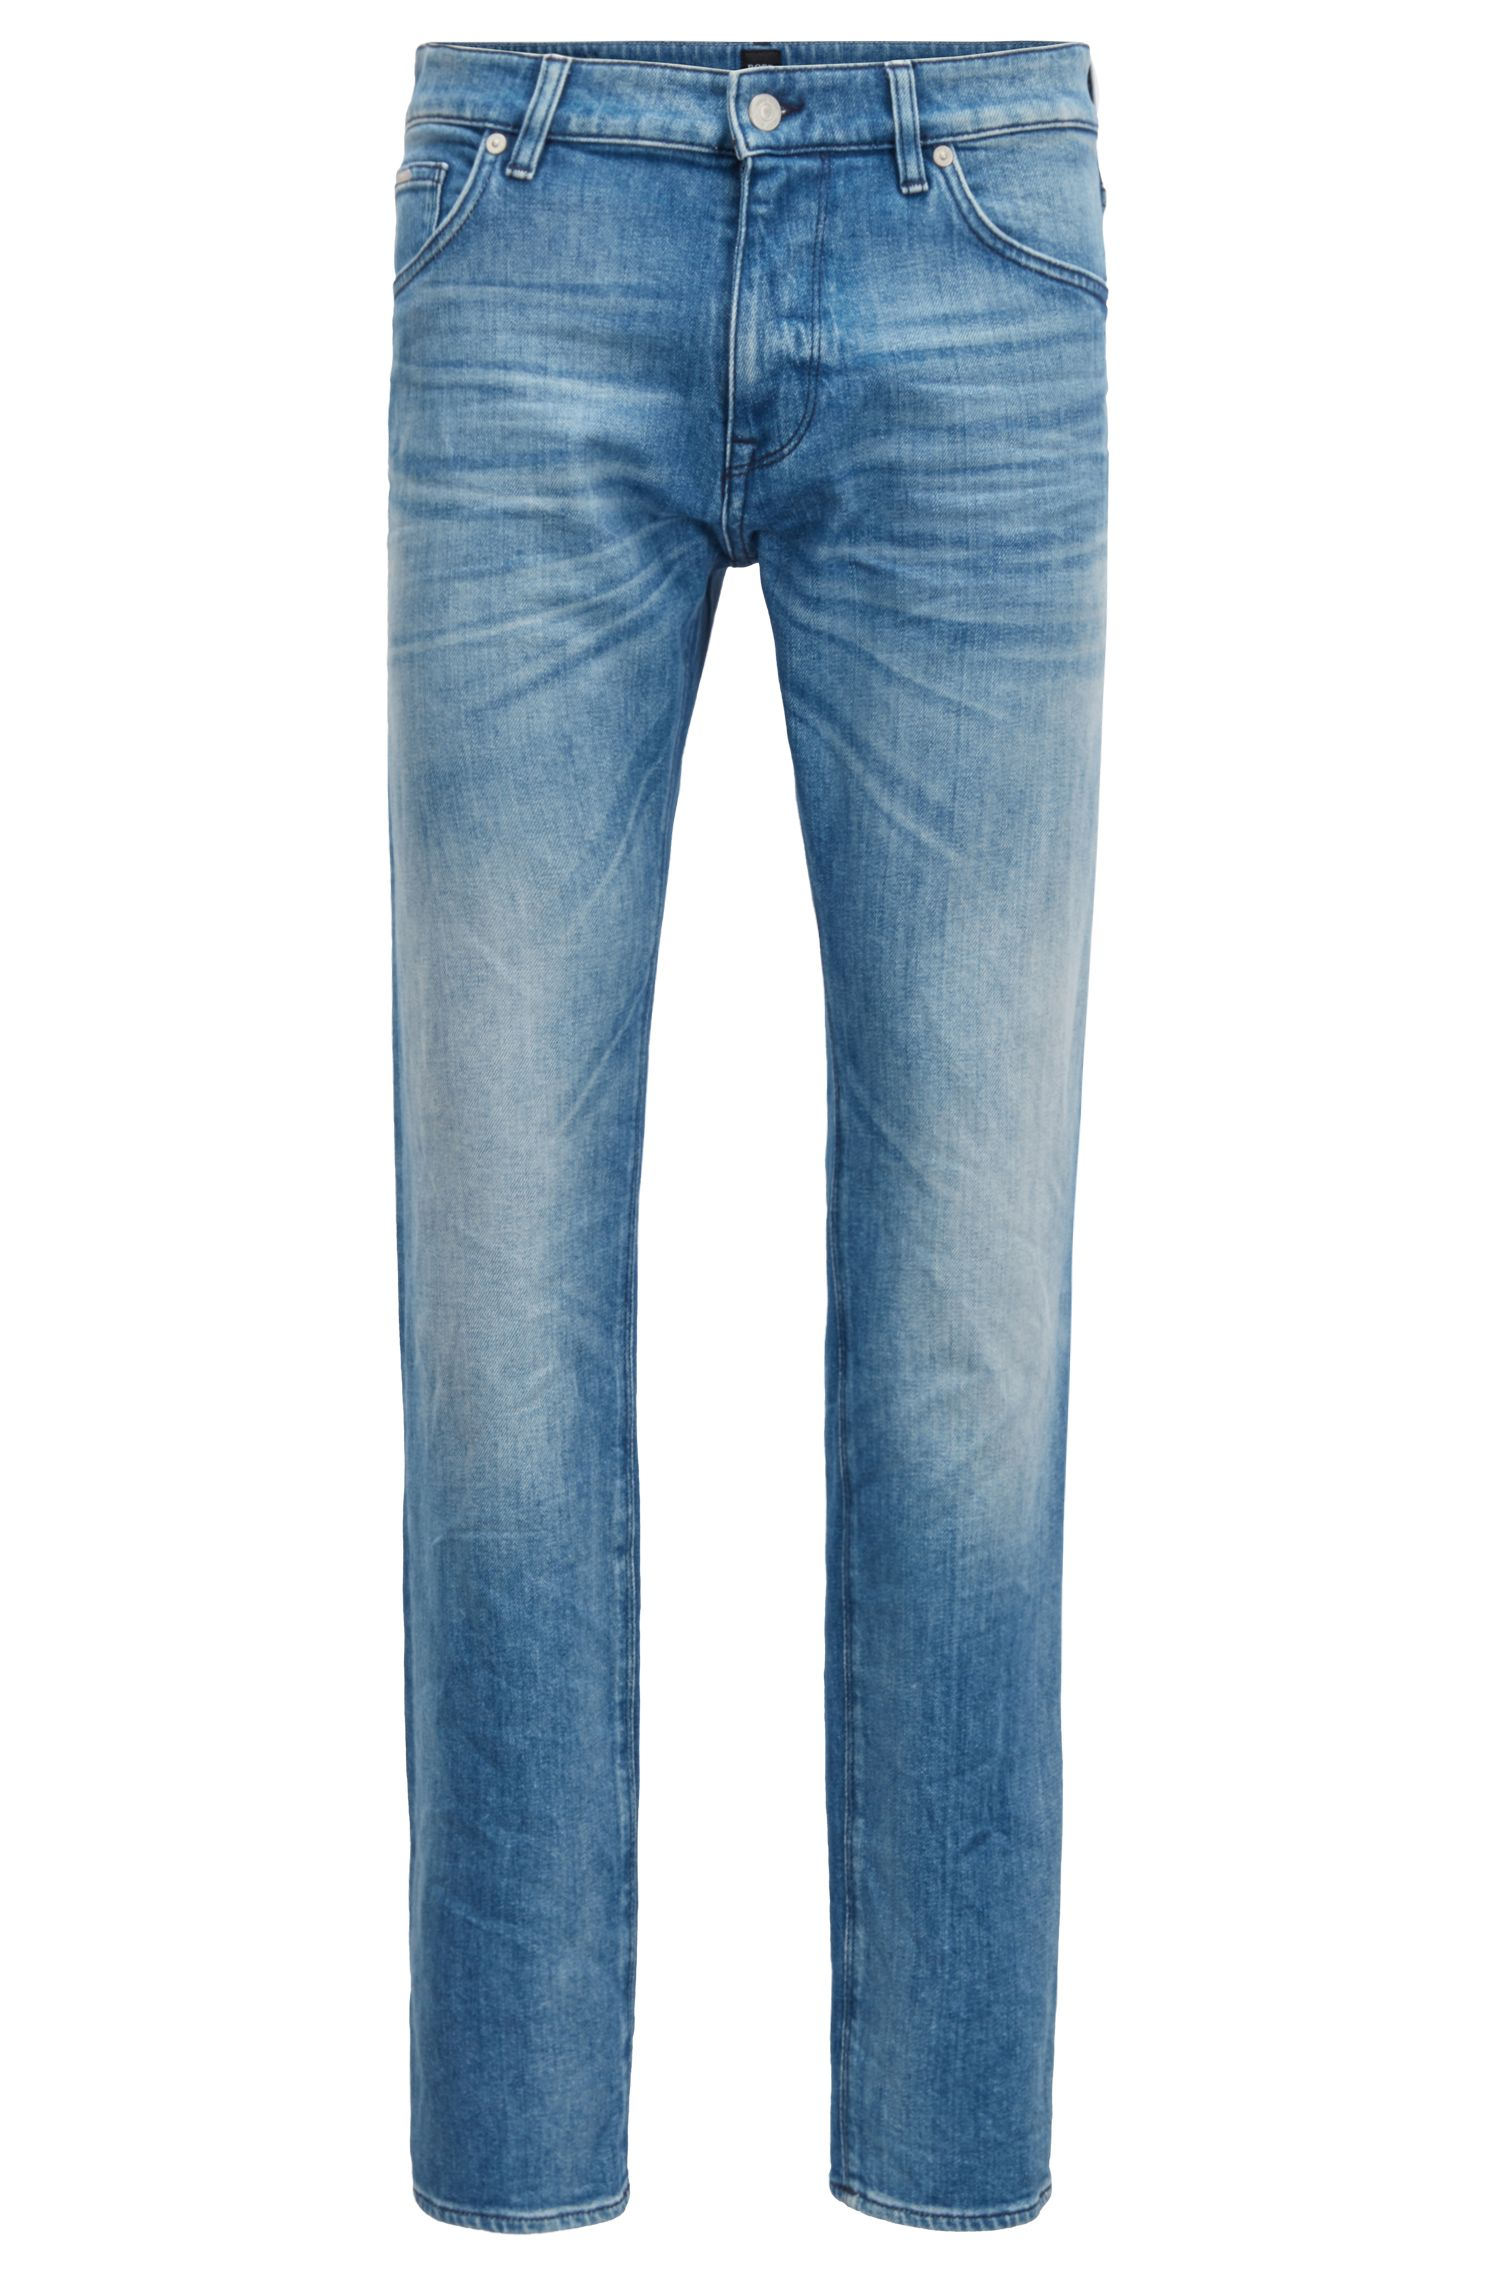 Regular-fit jeans in Italian stretch ring denim, Turquoise